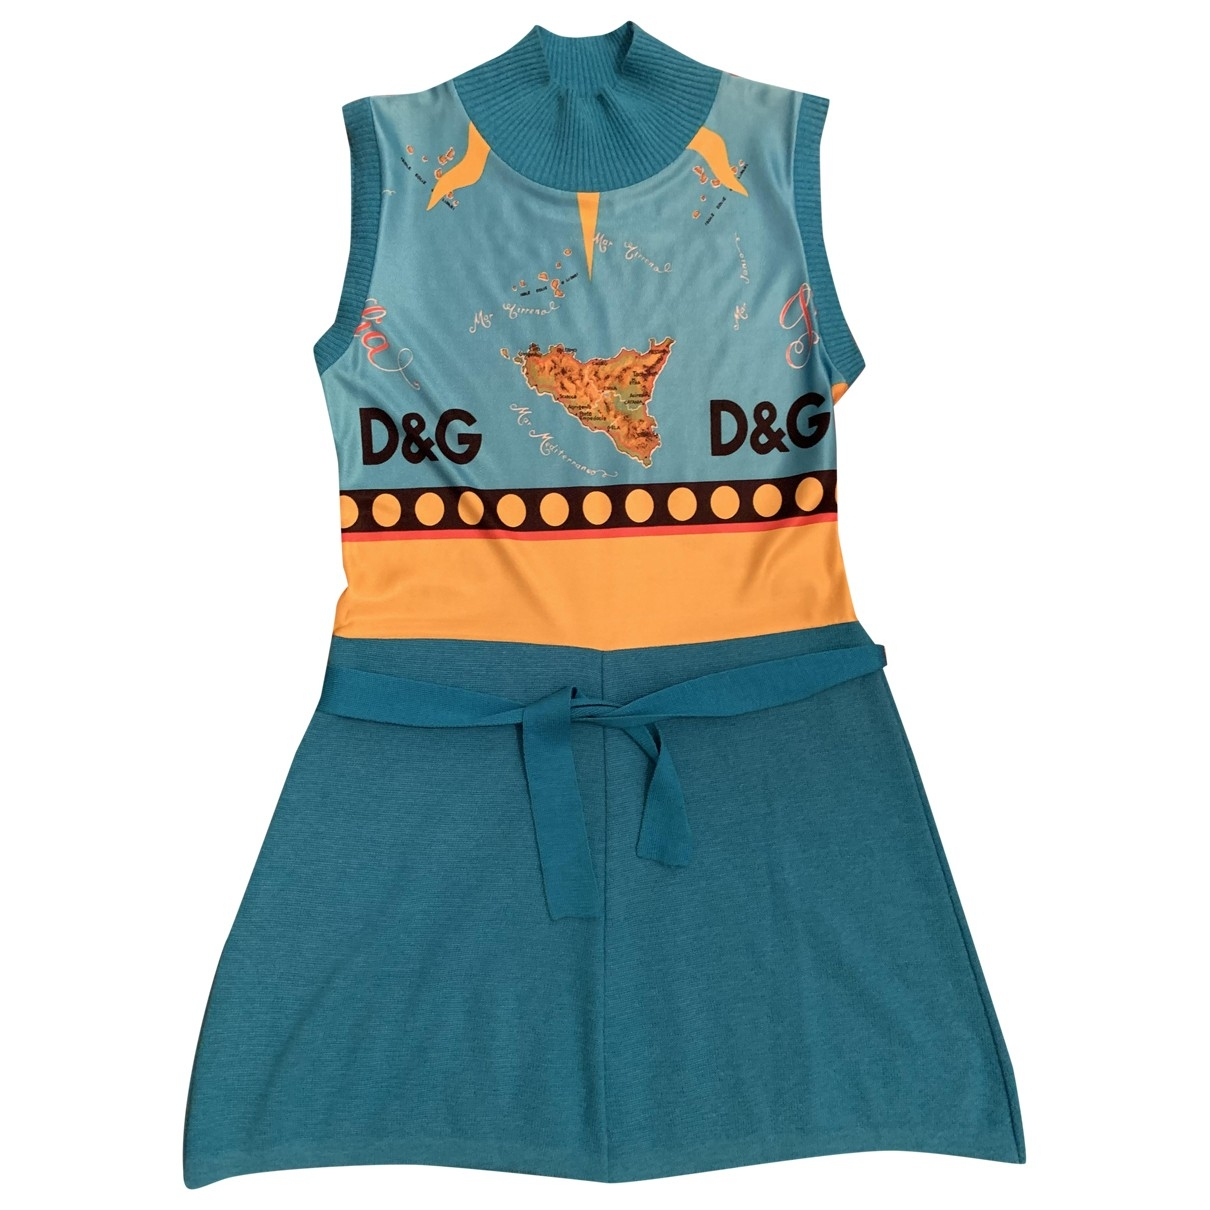 D&g \N Turquoise Cotton dress for Women 44 IT